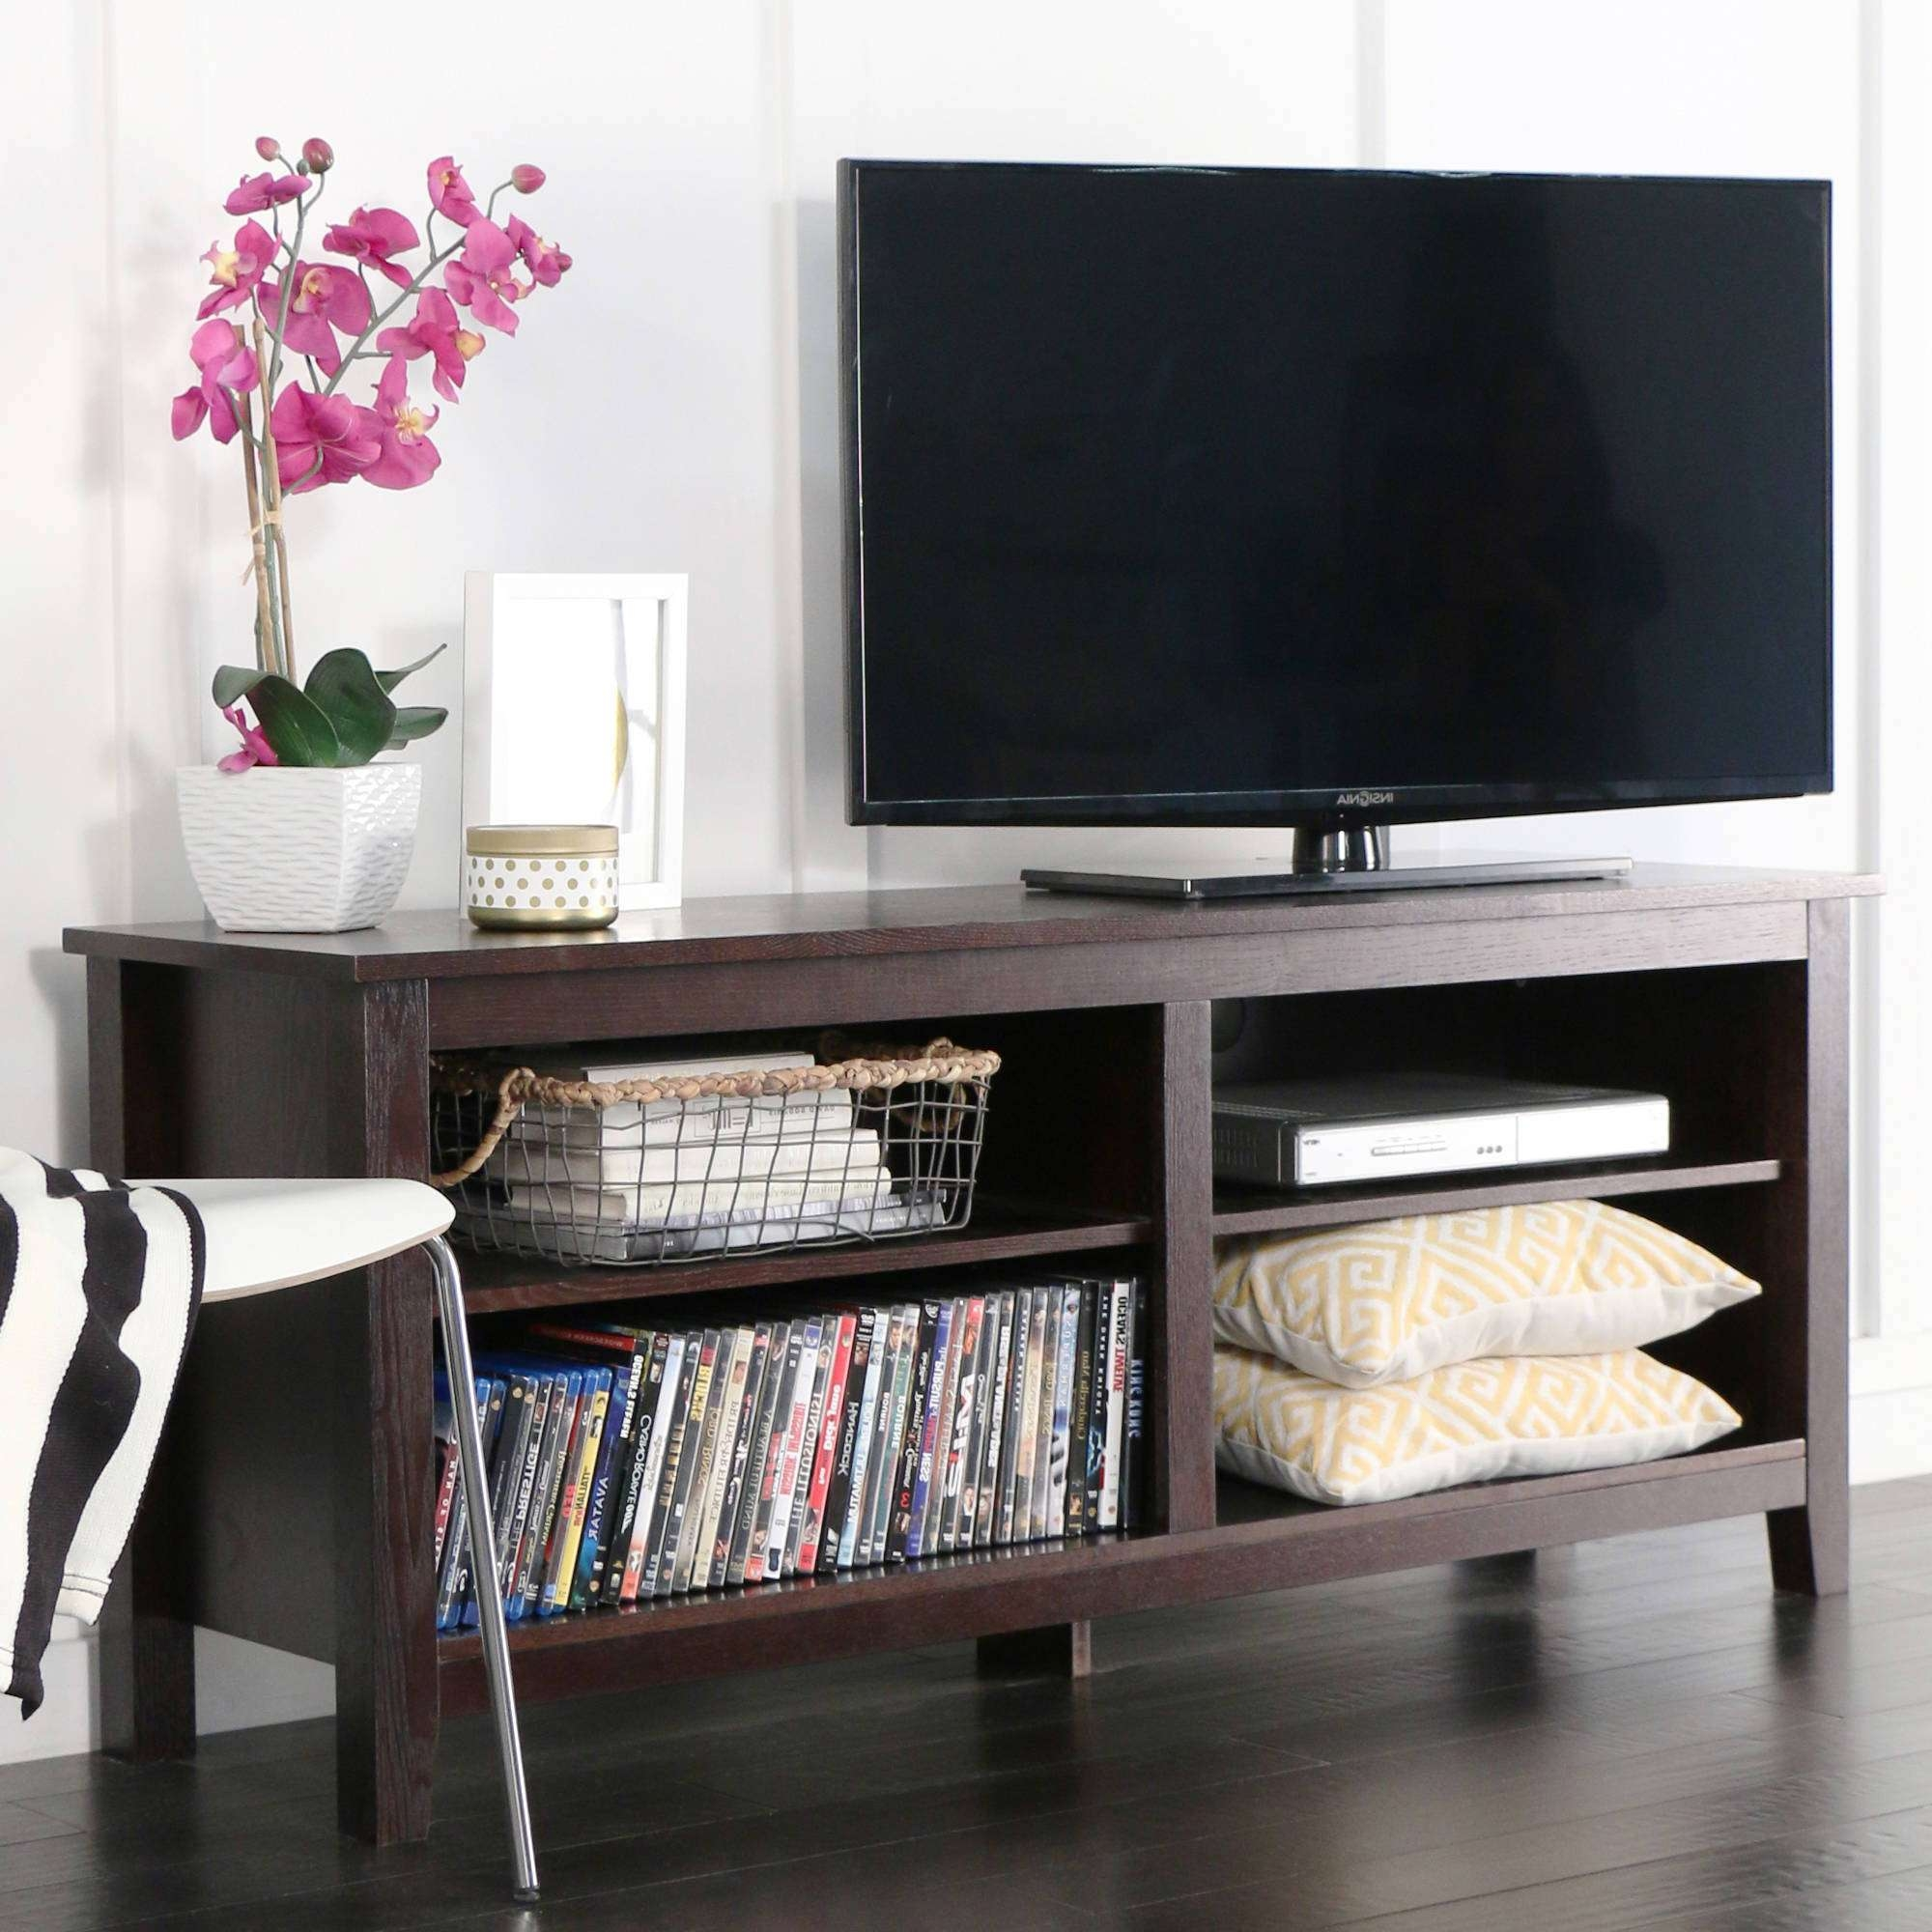 "Walker Edison Reclaimed Wood Tv Stand For Tvs Up To 70"", Multiple Throughout Dark Wood Tv Stands (View 13 of 15)"